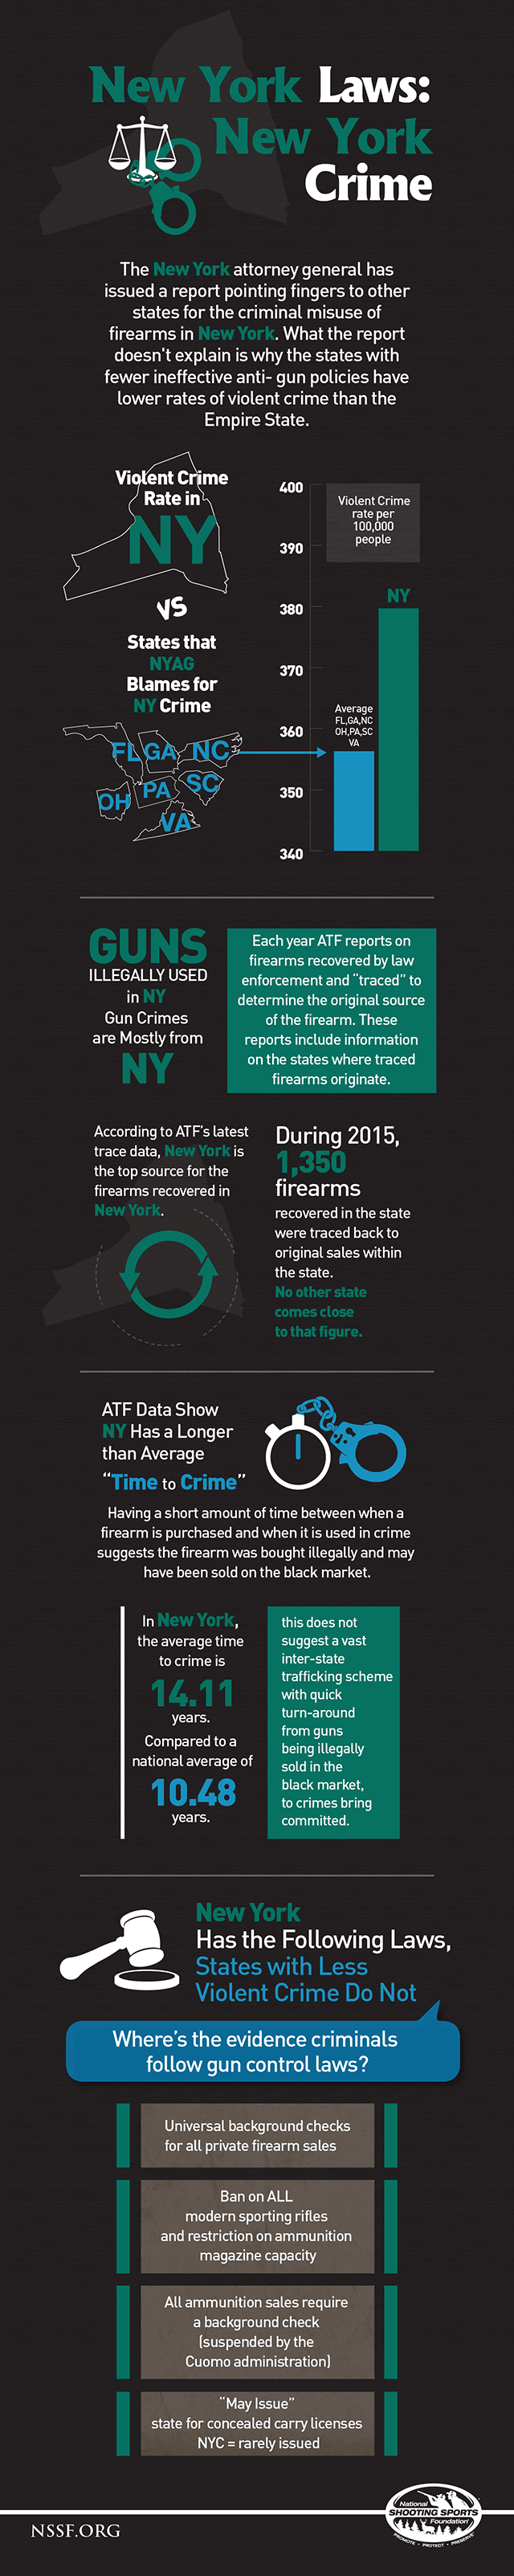 NY Guns Crime Infographic